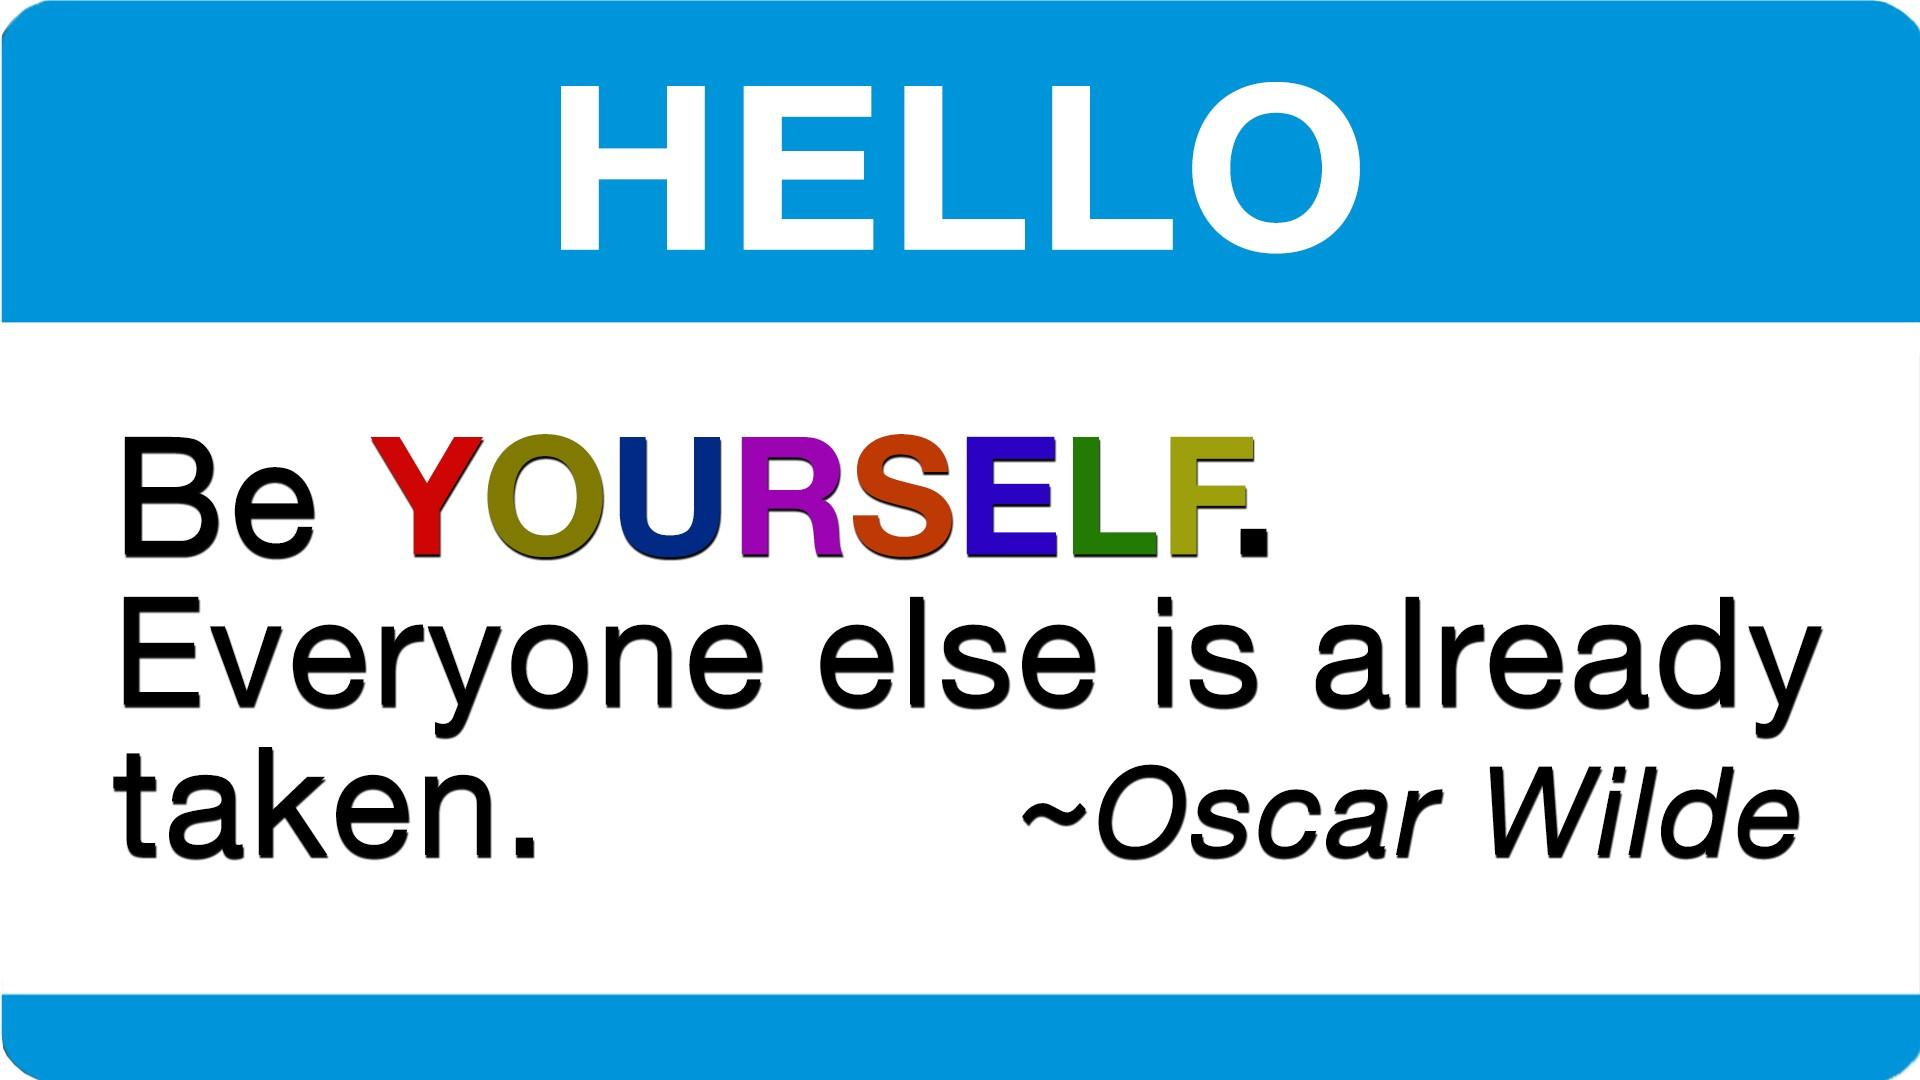 Oscar Wilde Quote - Be Yourself. Everyone else is already taken.